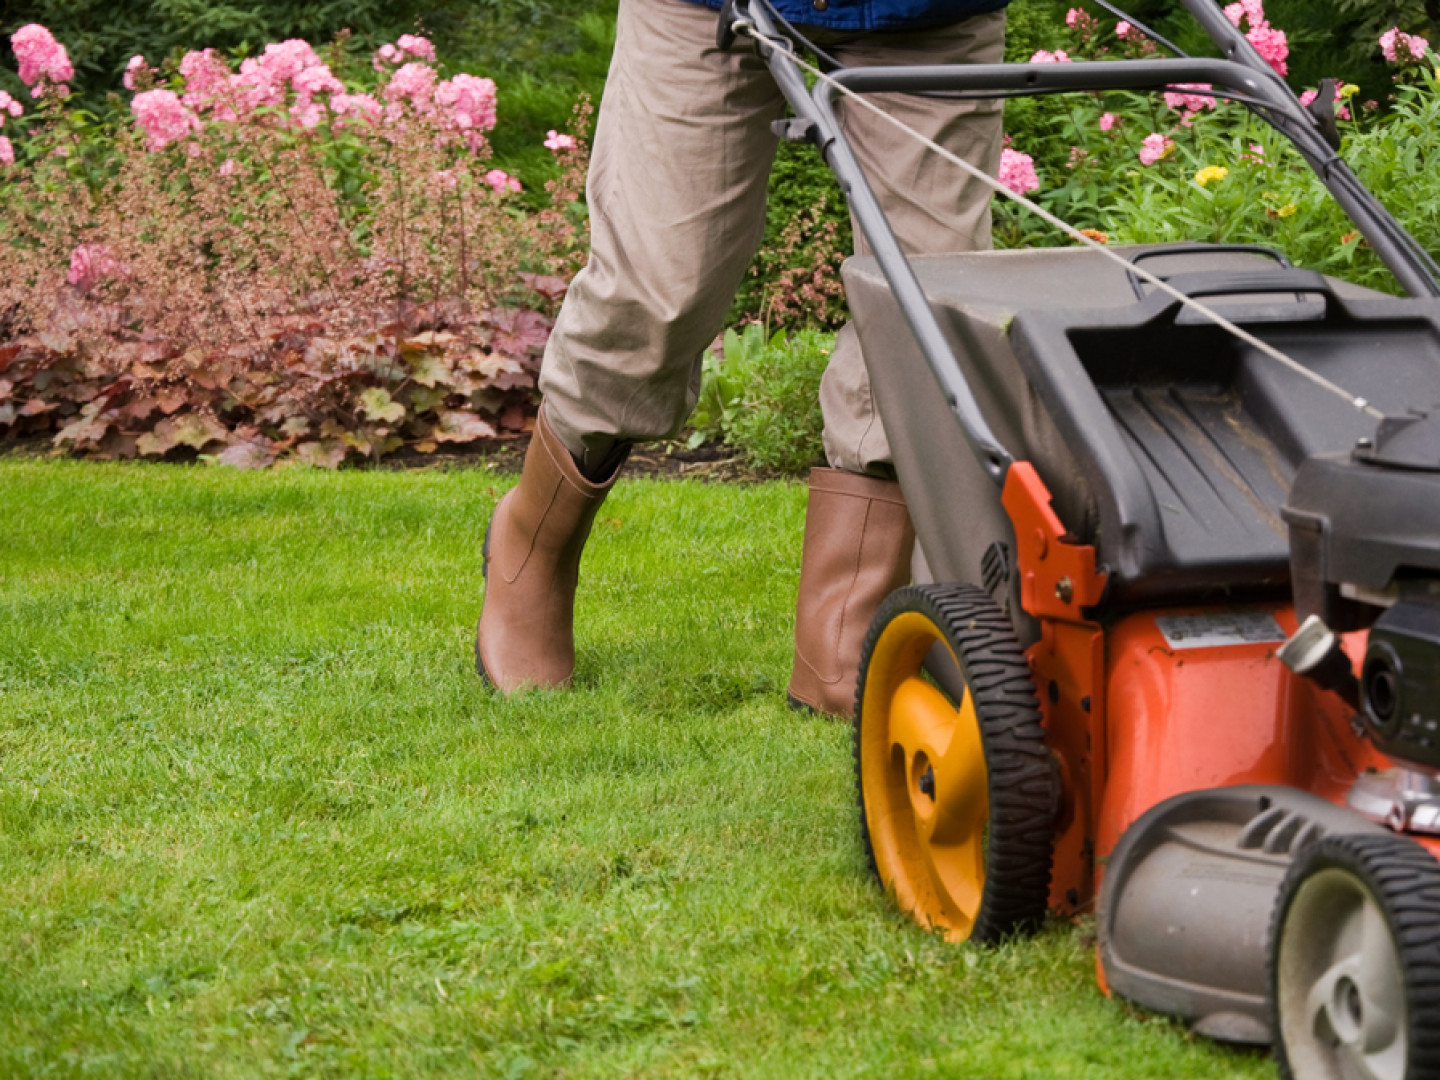 Don't Worry About Managing Your Lawn Yourself